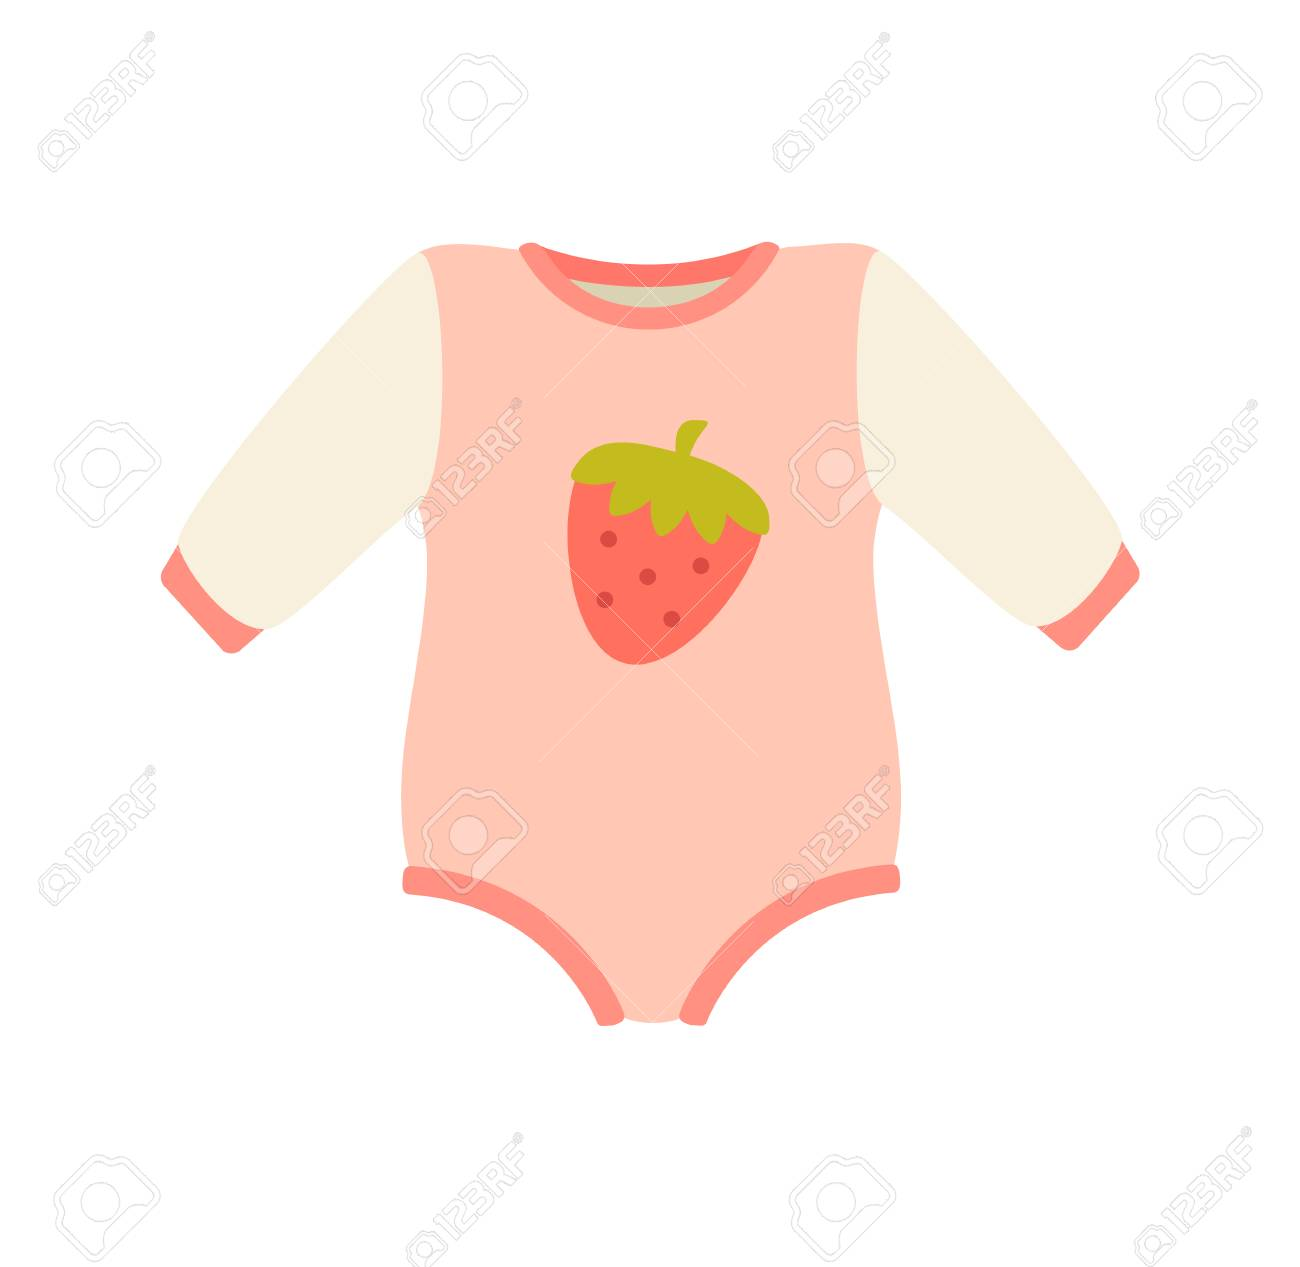 552dc6bc3 Baby Suit Clothes And Romper Vector Illustration Royalty Free ...